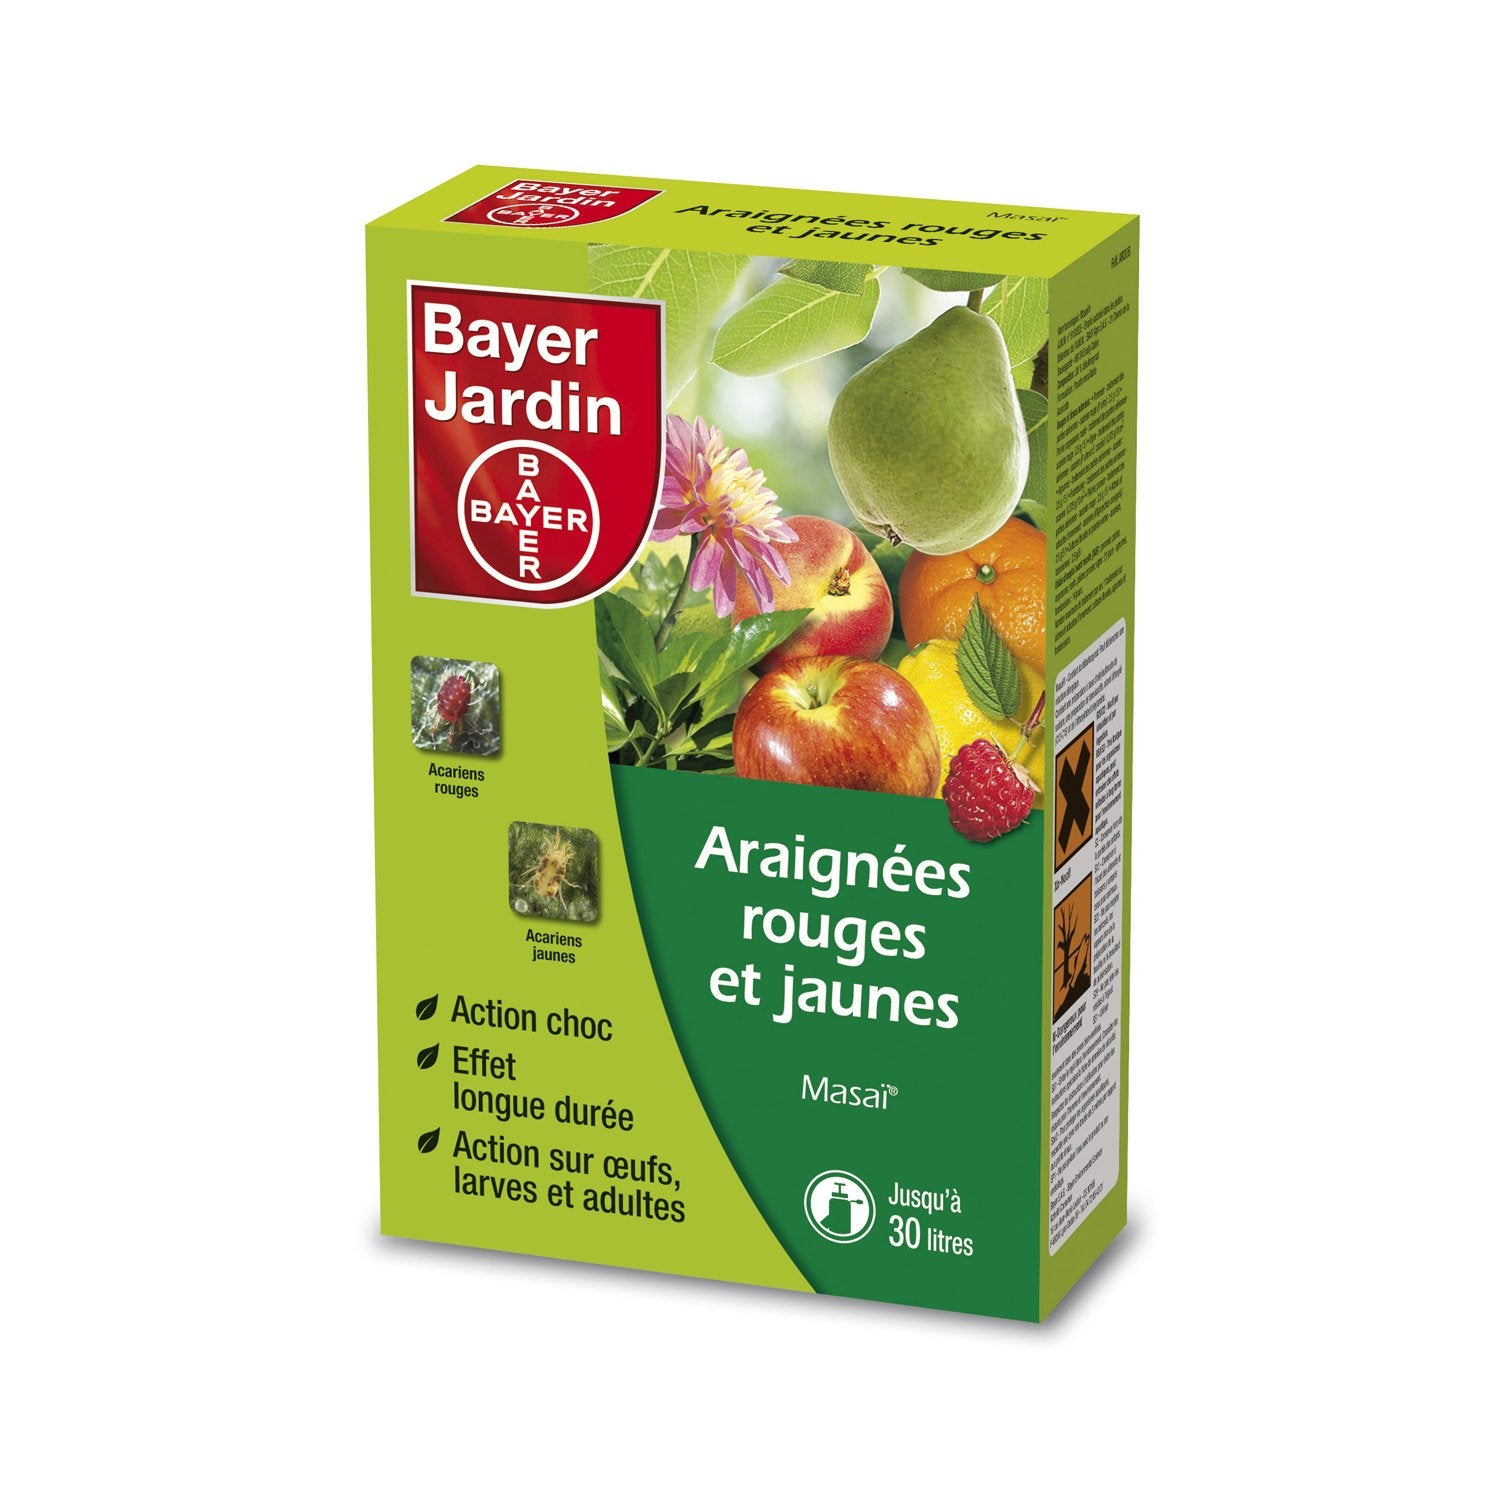 insecticide araignees rouges bayer